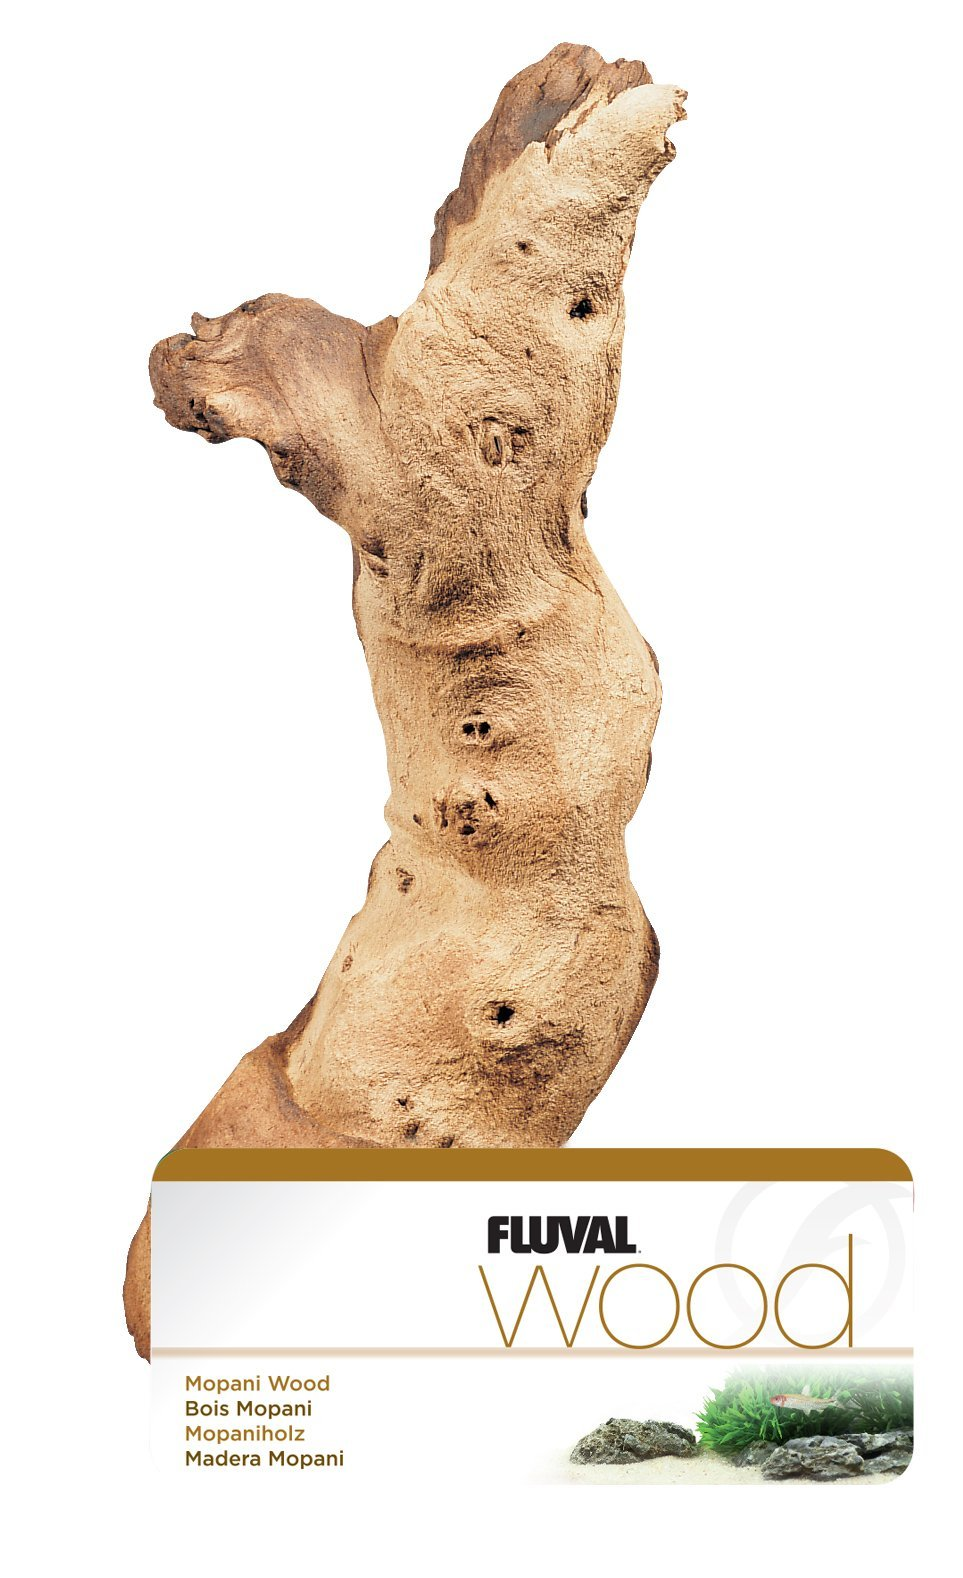 Fluval Mopani Driftwood - Large - 11.8 X 17.7 in by GEOsystem